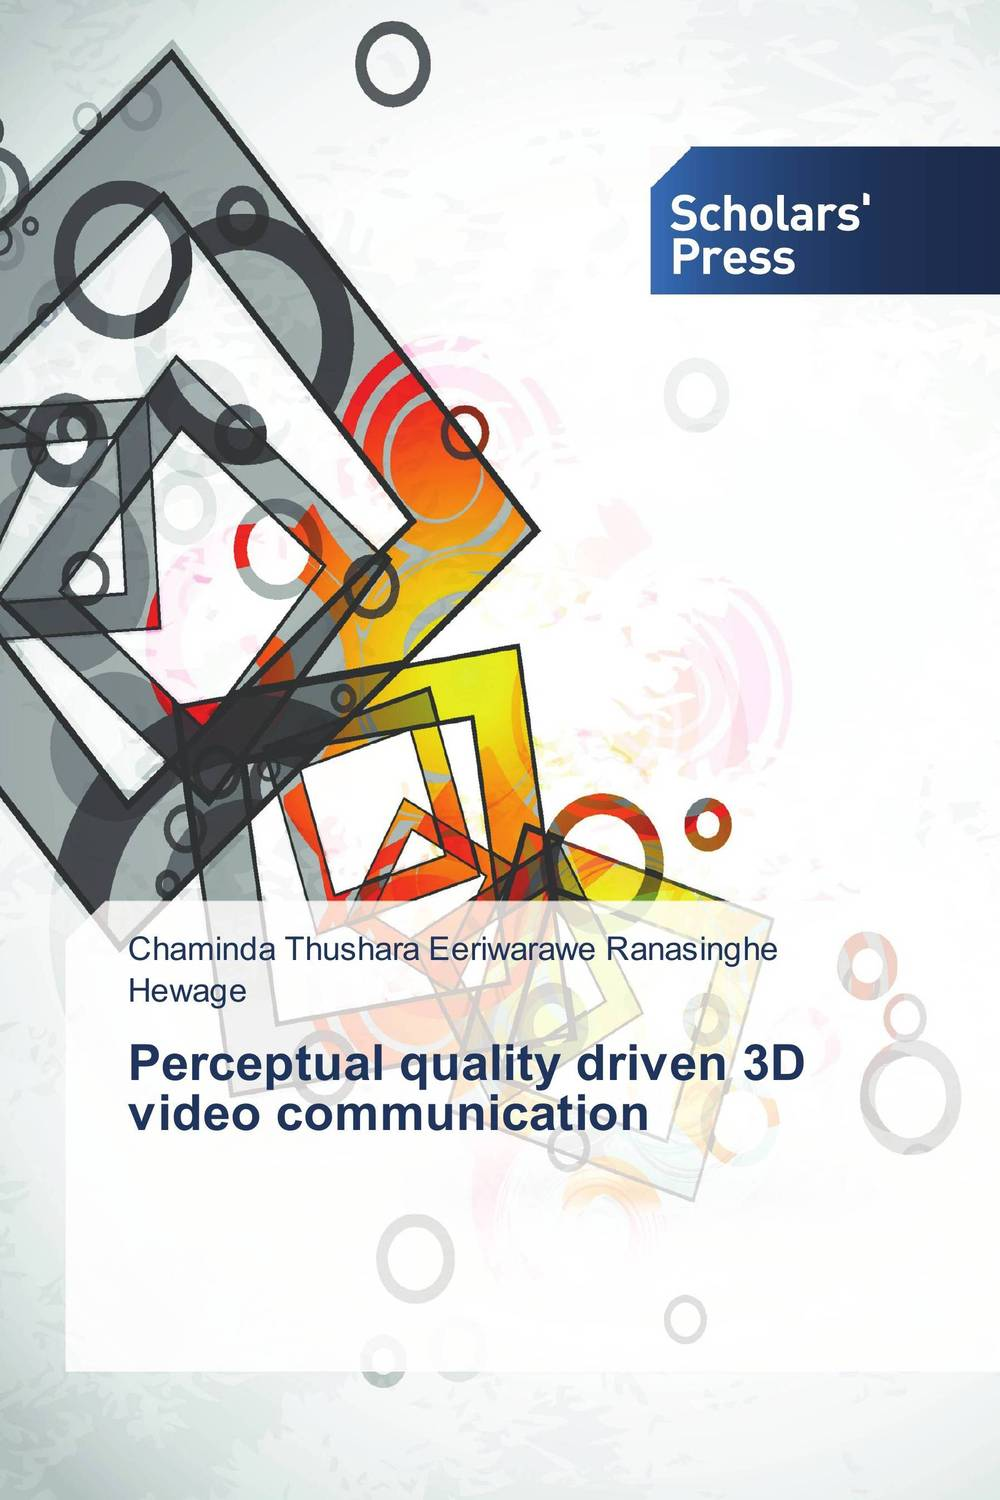 Perceptual quality driven 3D video communication driven to distraction